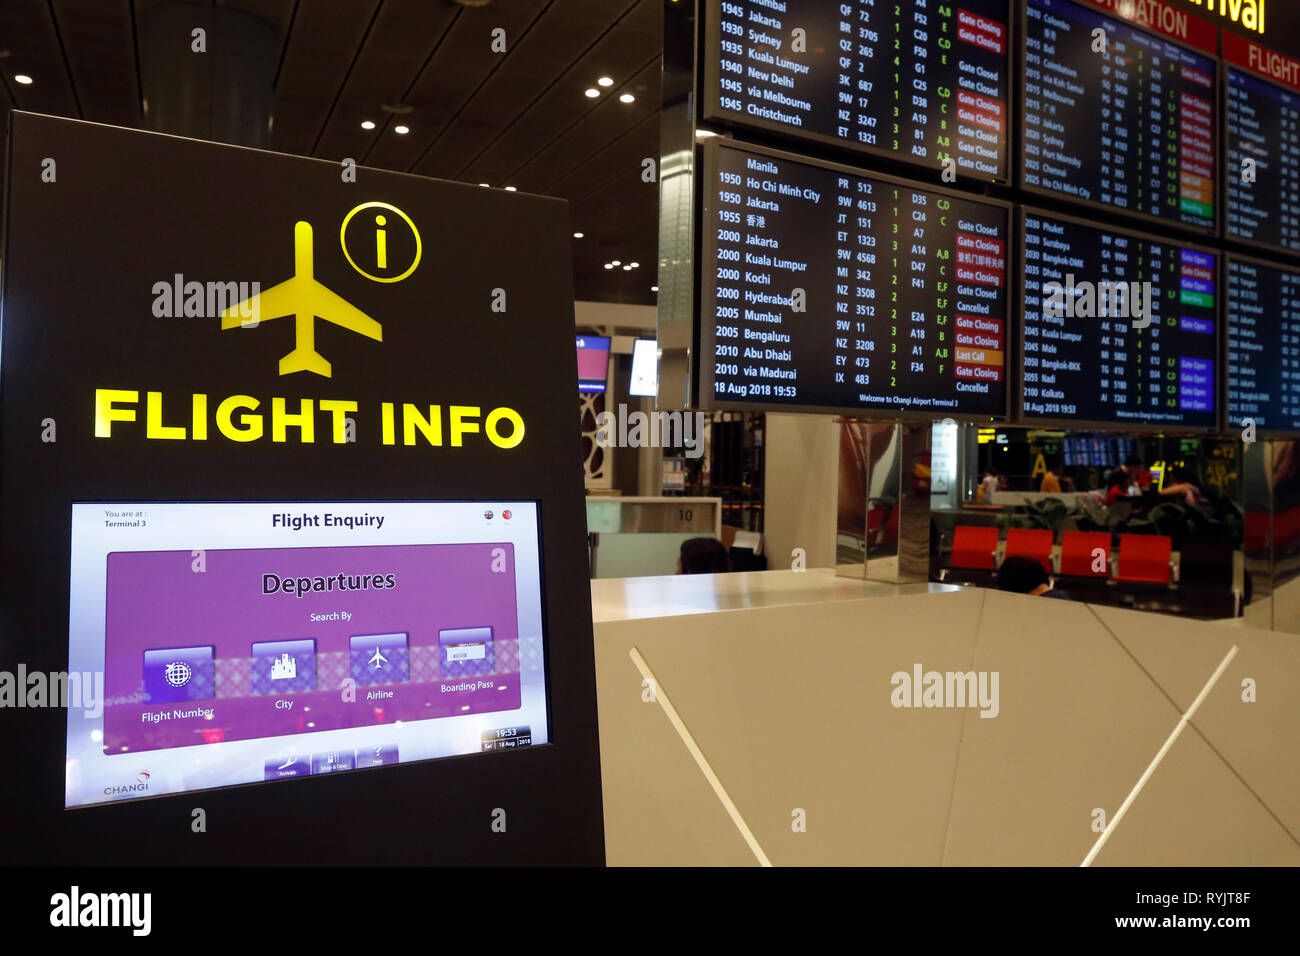 Changi airport  Flight info  Singapore Stock Photo